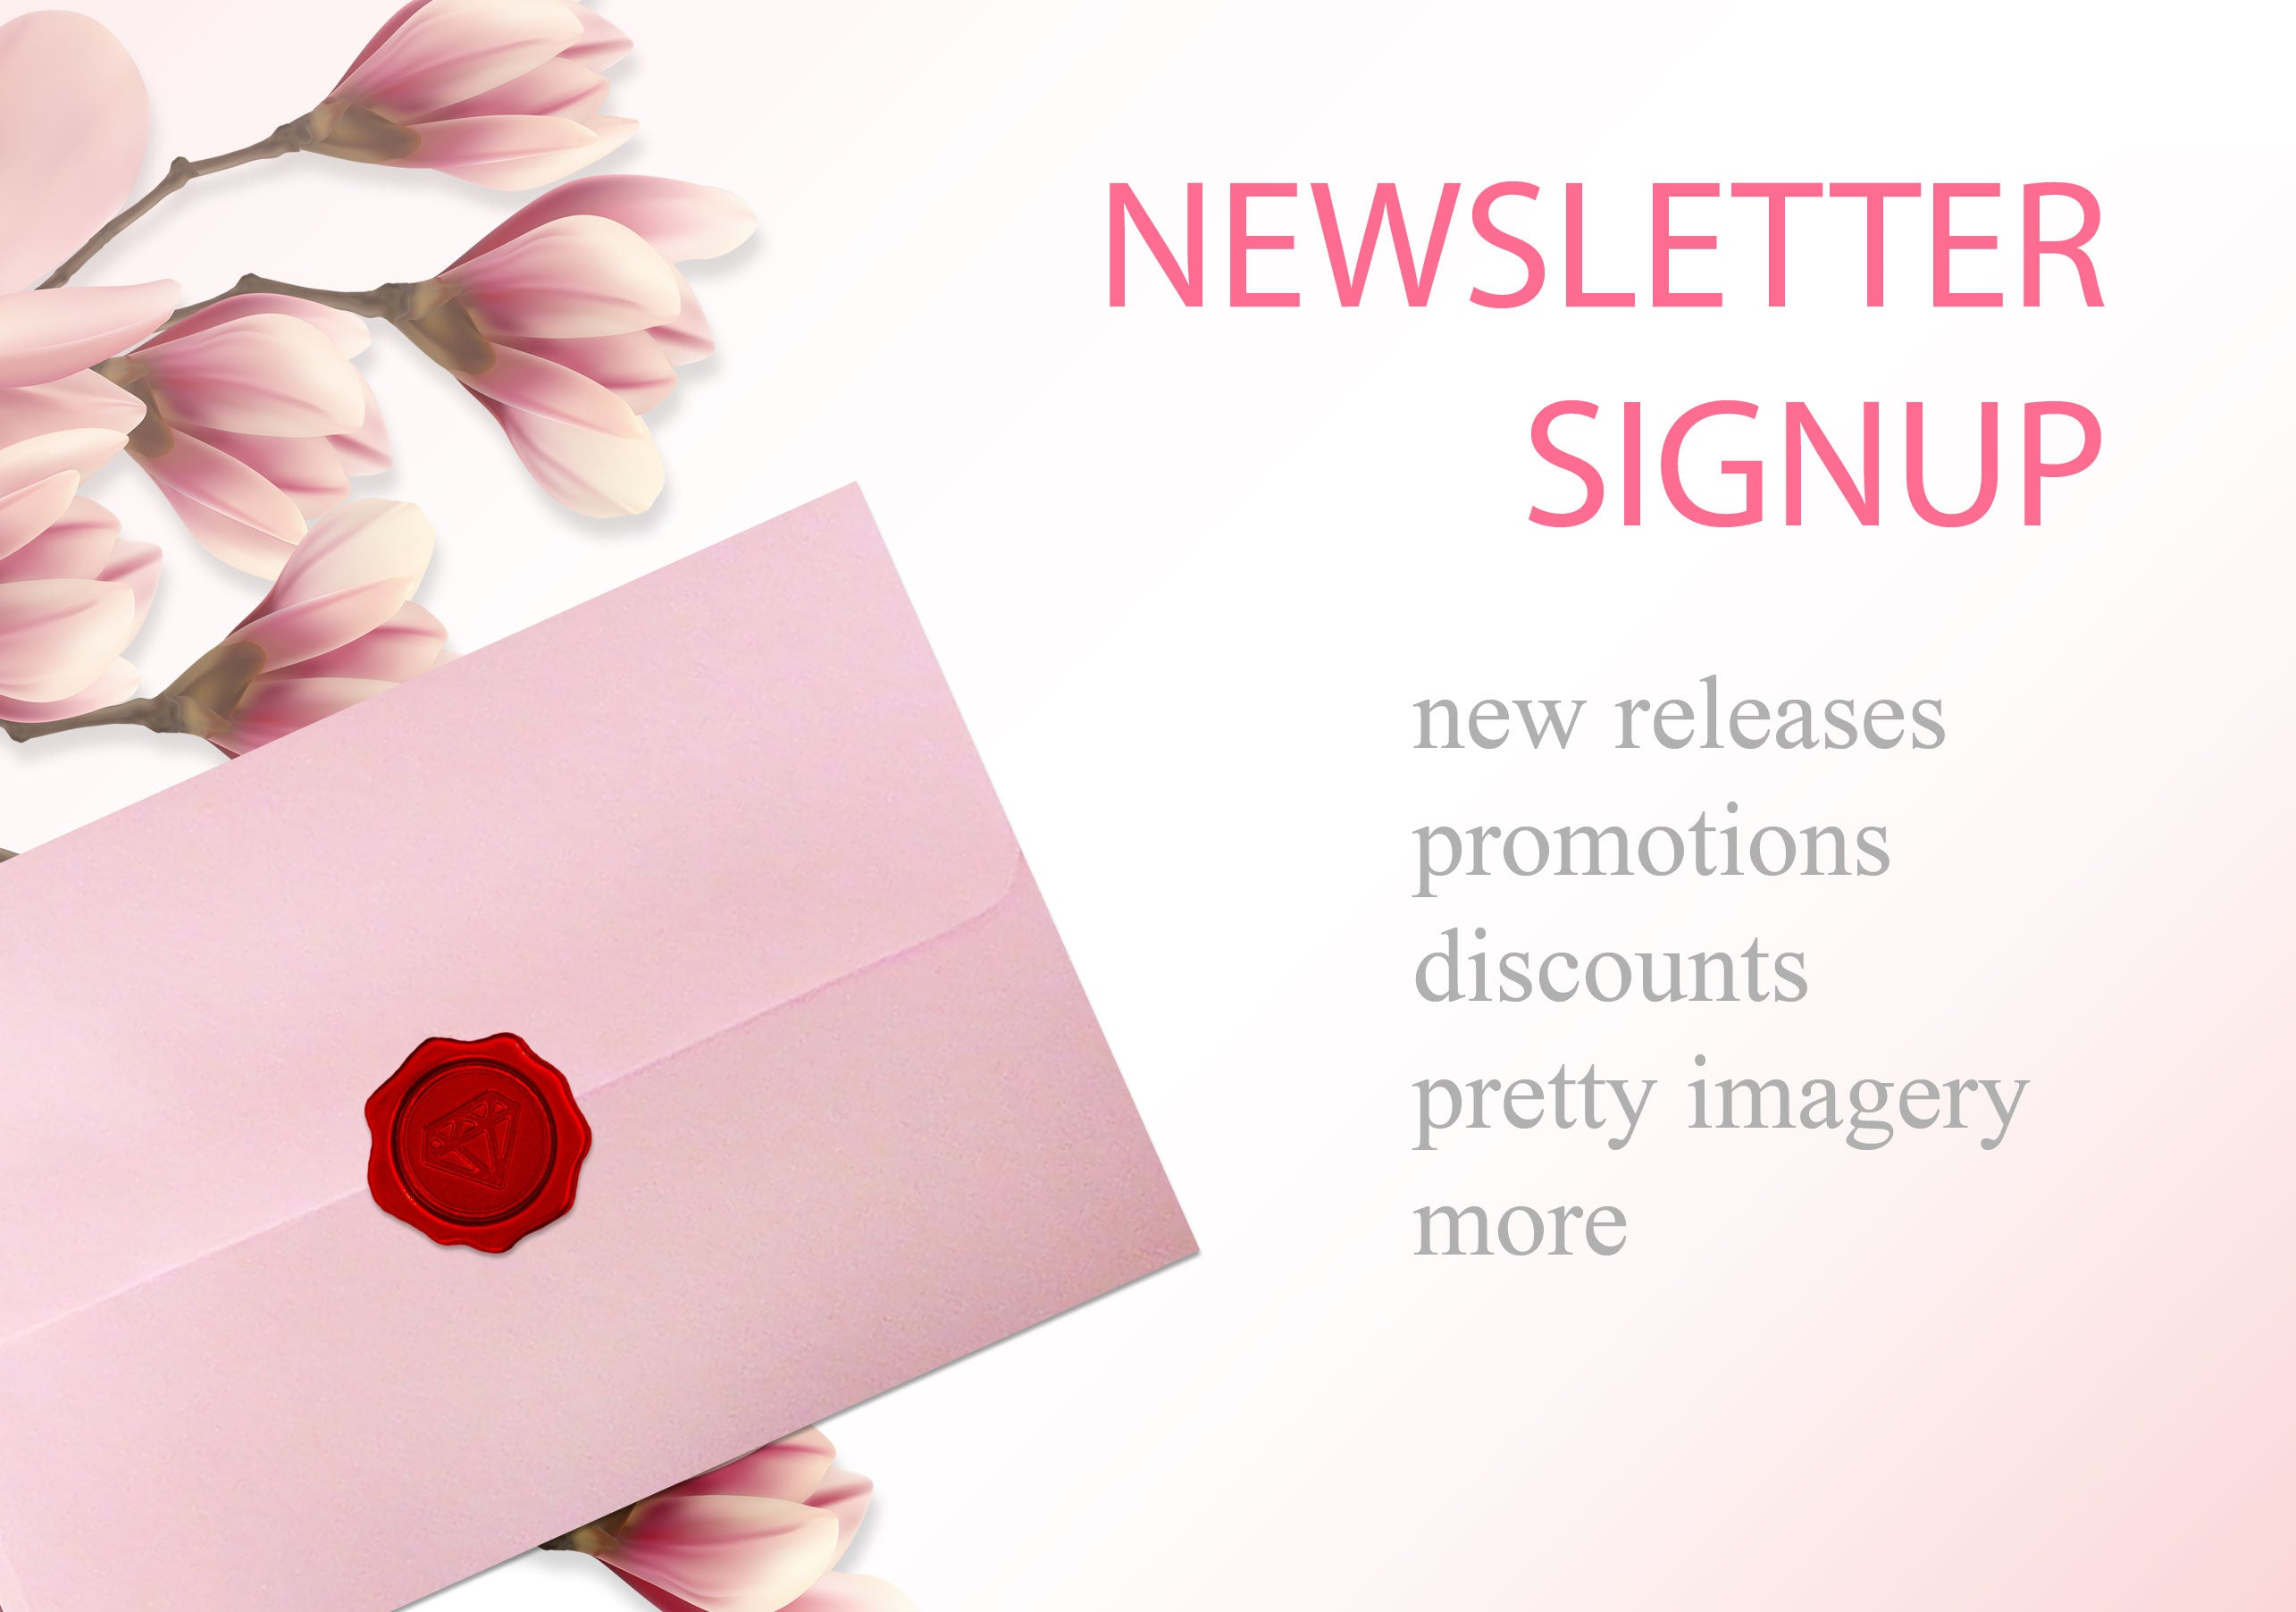 Newsletter Signup - envelope